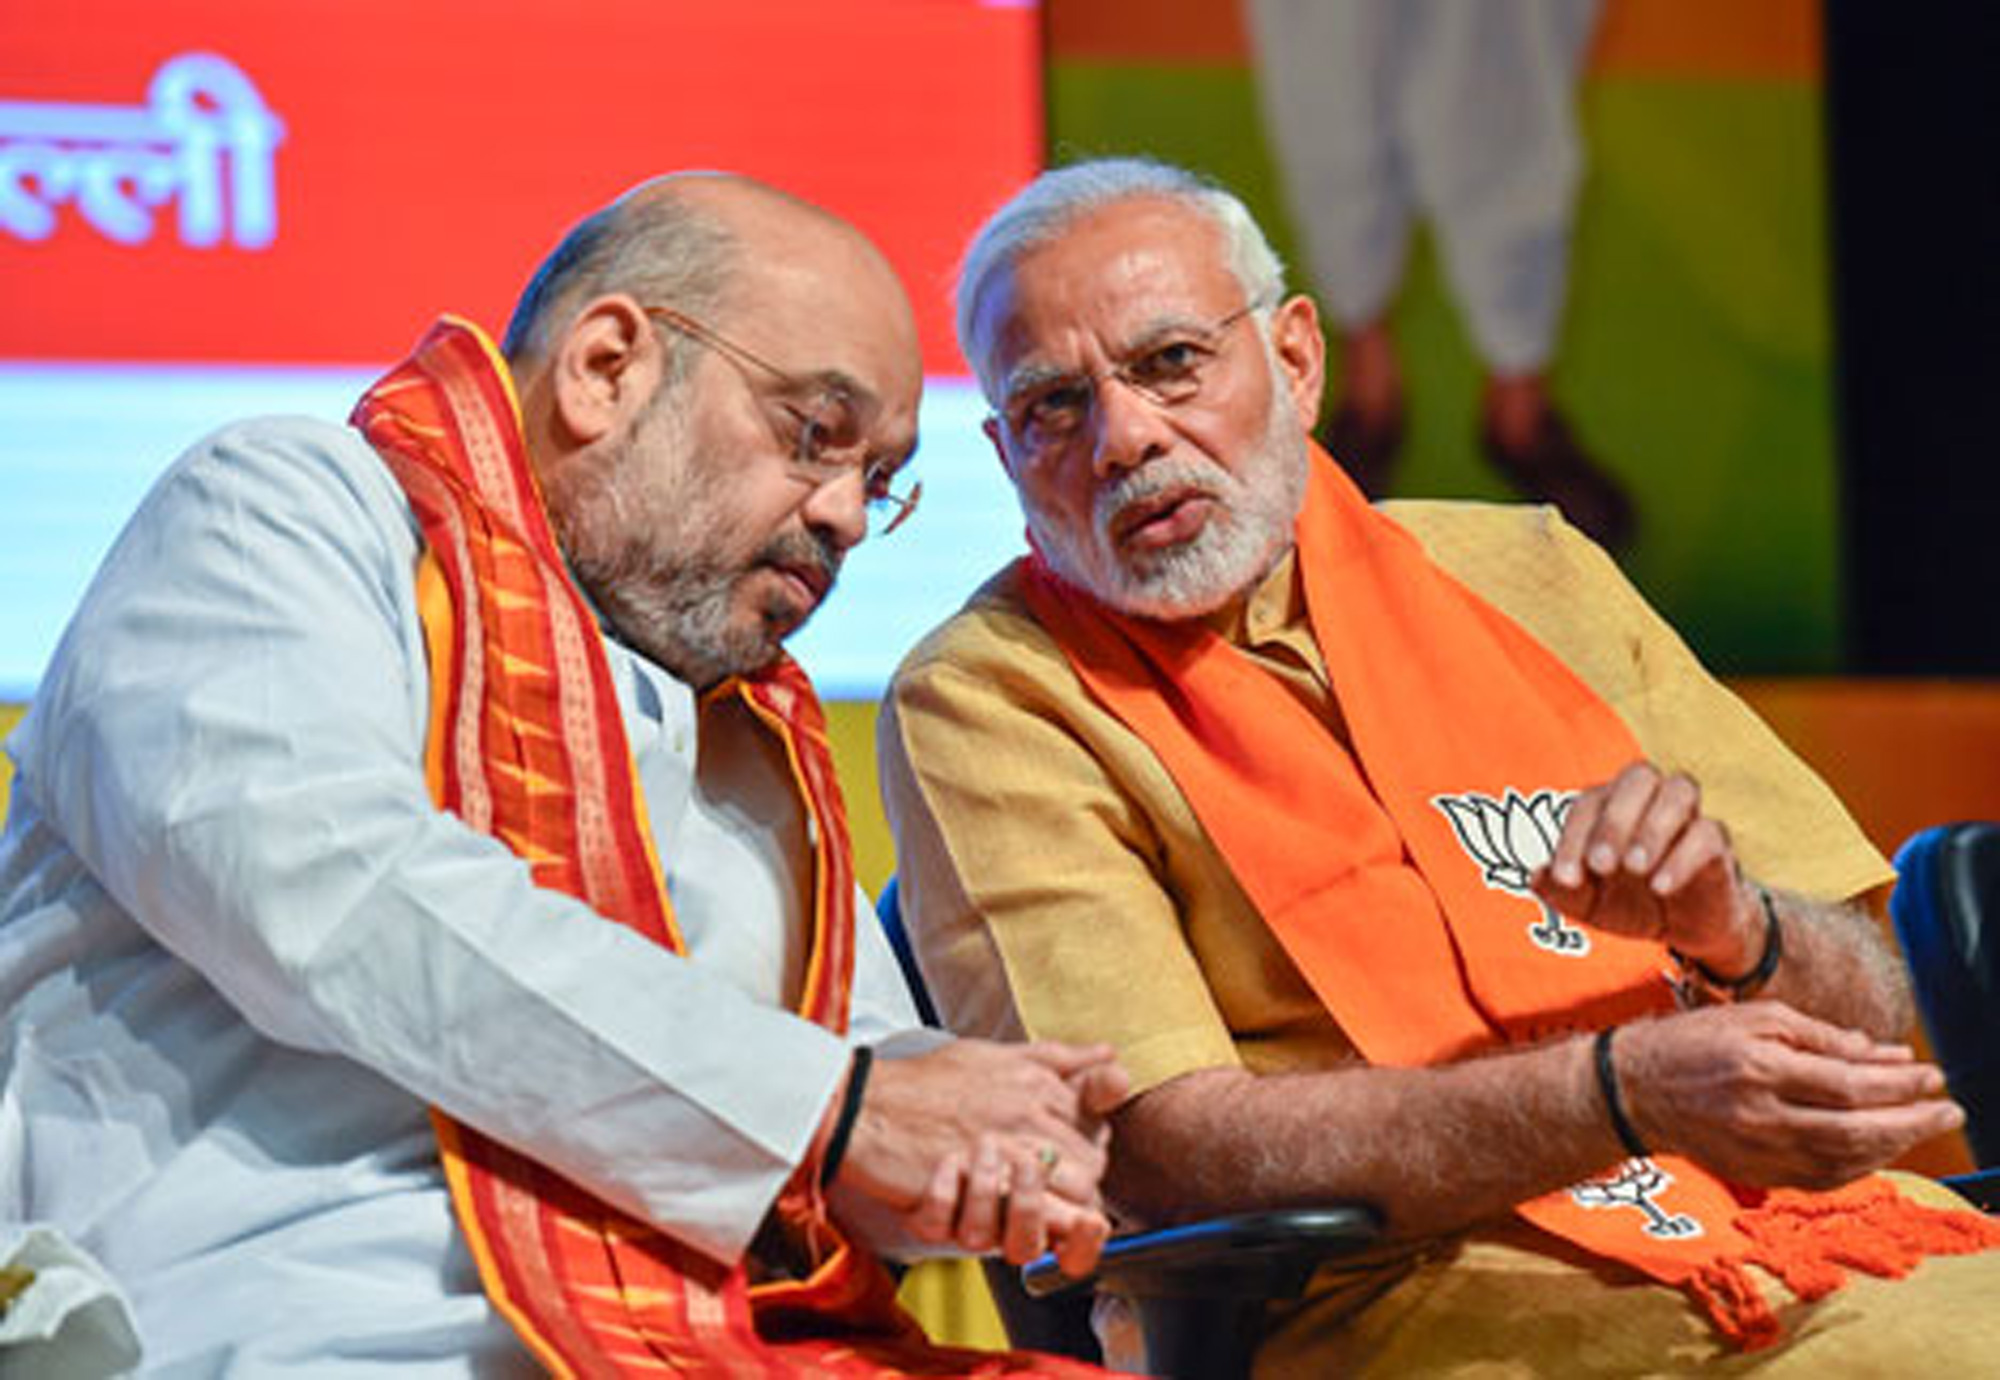 Amit Shah had described Narendra Modi as the strong leader who sends shivers down the spine of his enemies.